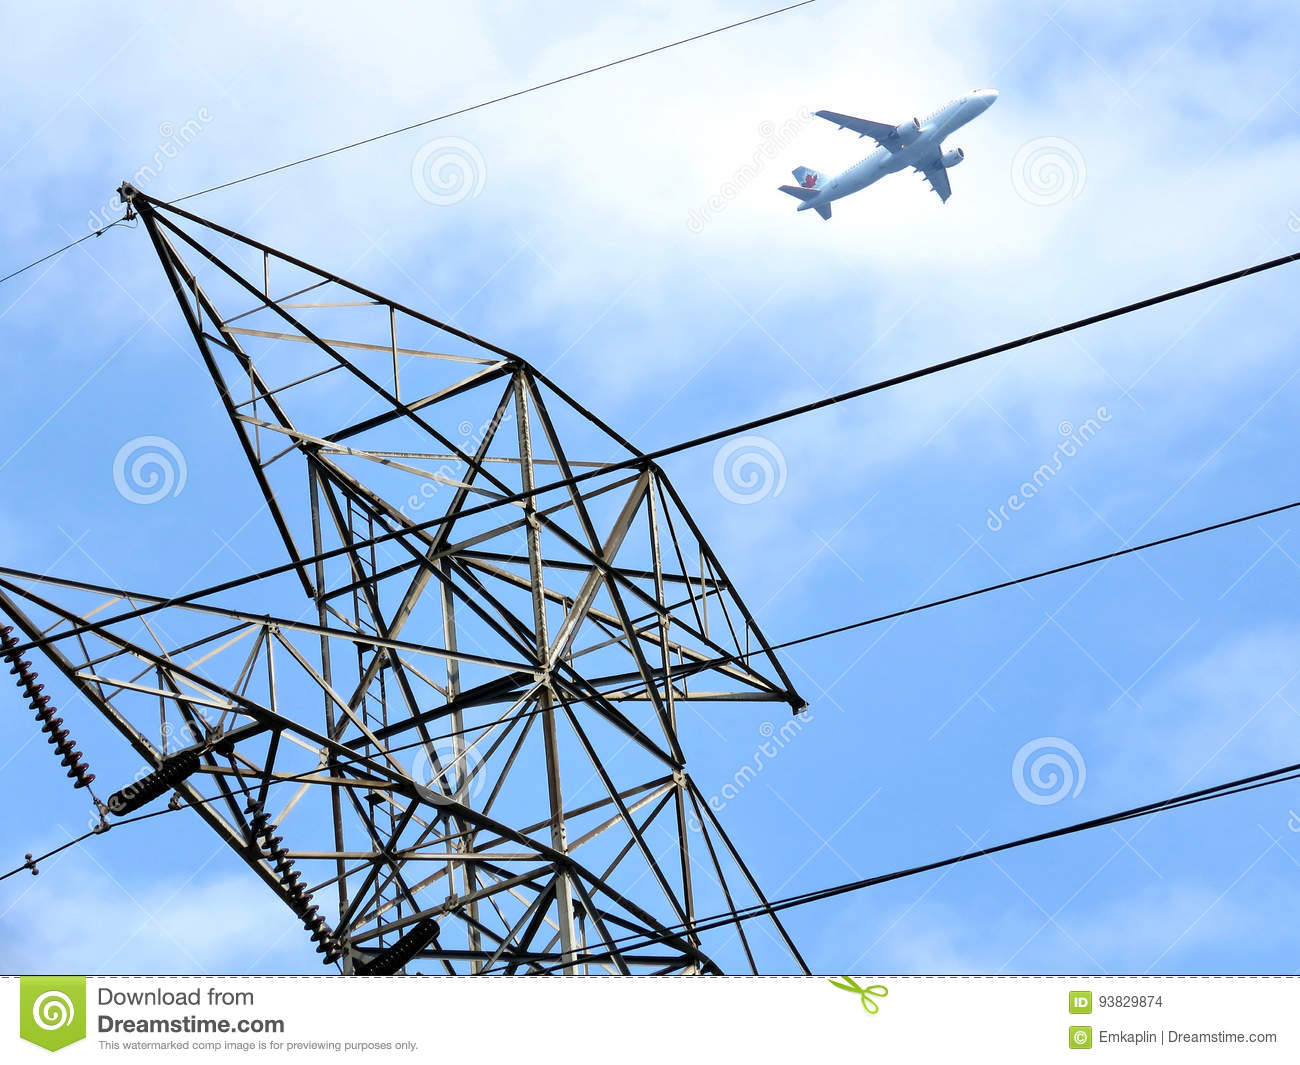 Toronto airplane over transmission tower 2017